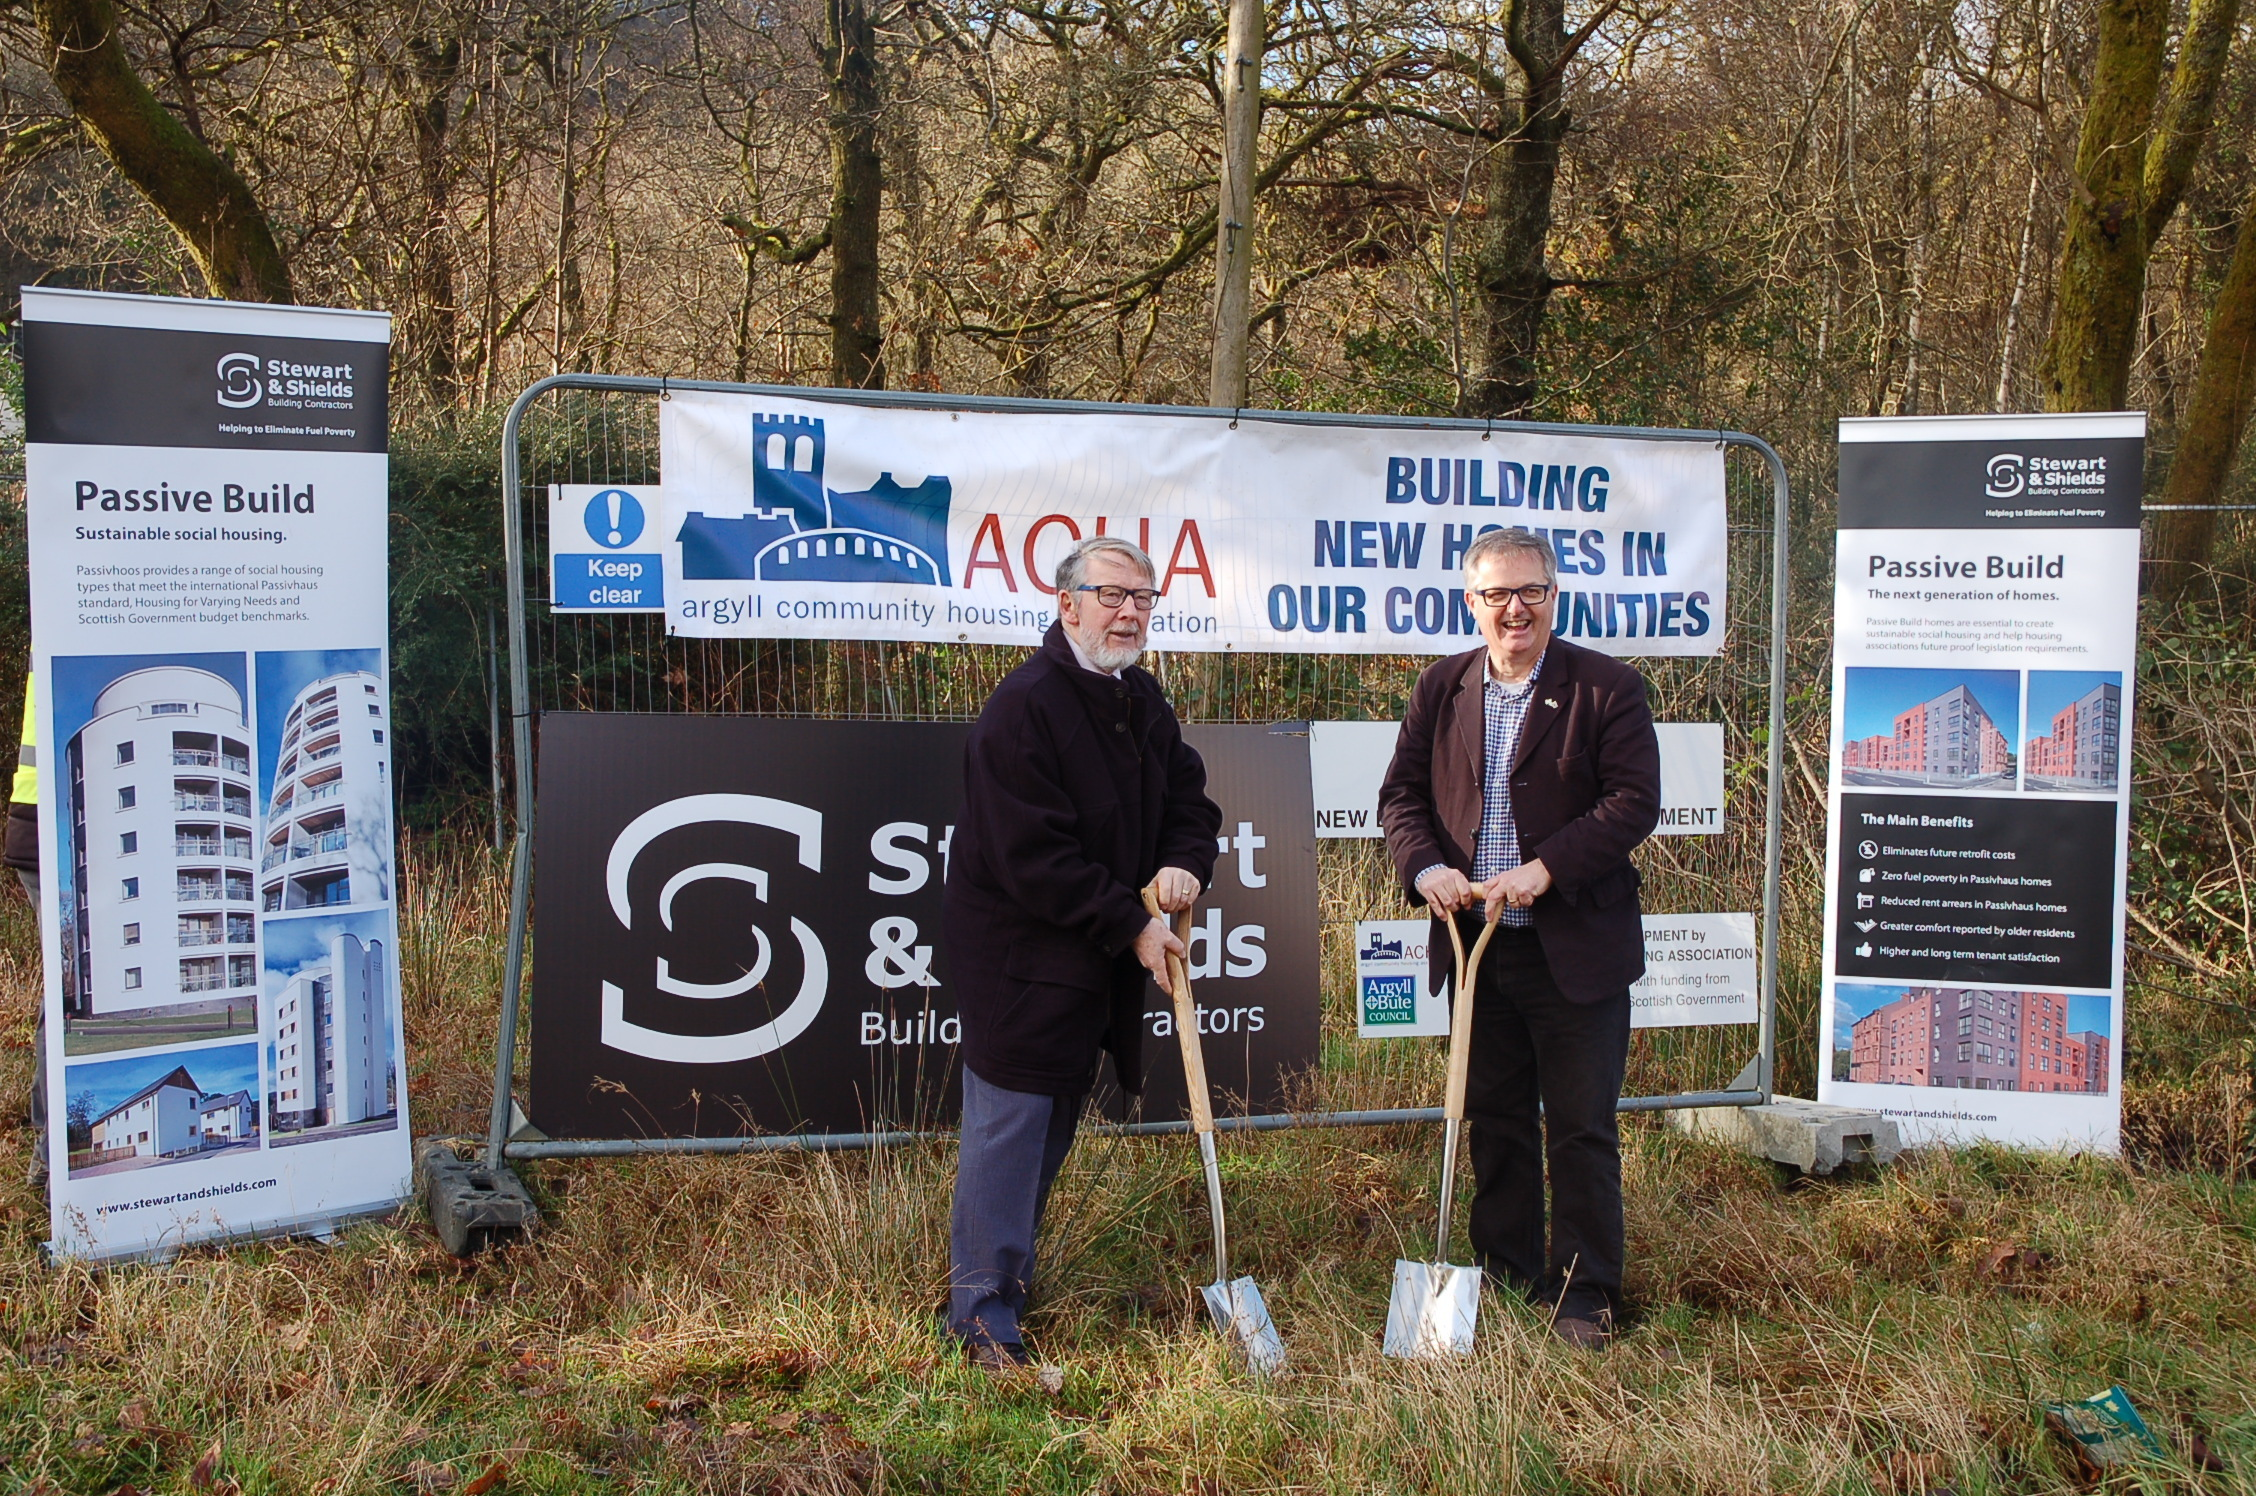 Brendan O'Hara MP joins Jim Milne, chair of ACHA's board of management, to cut the first turf on the new 'Passivhaus' development in Garelochhead